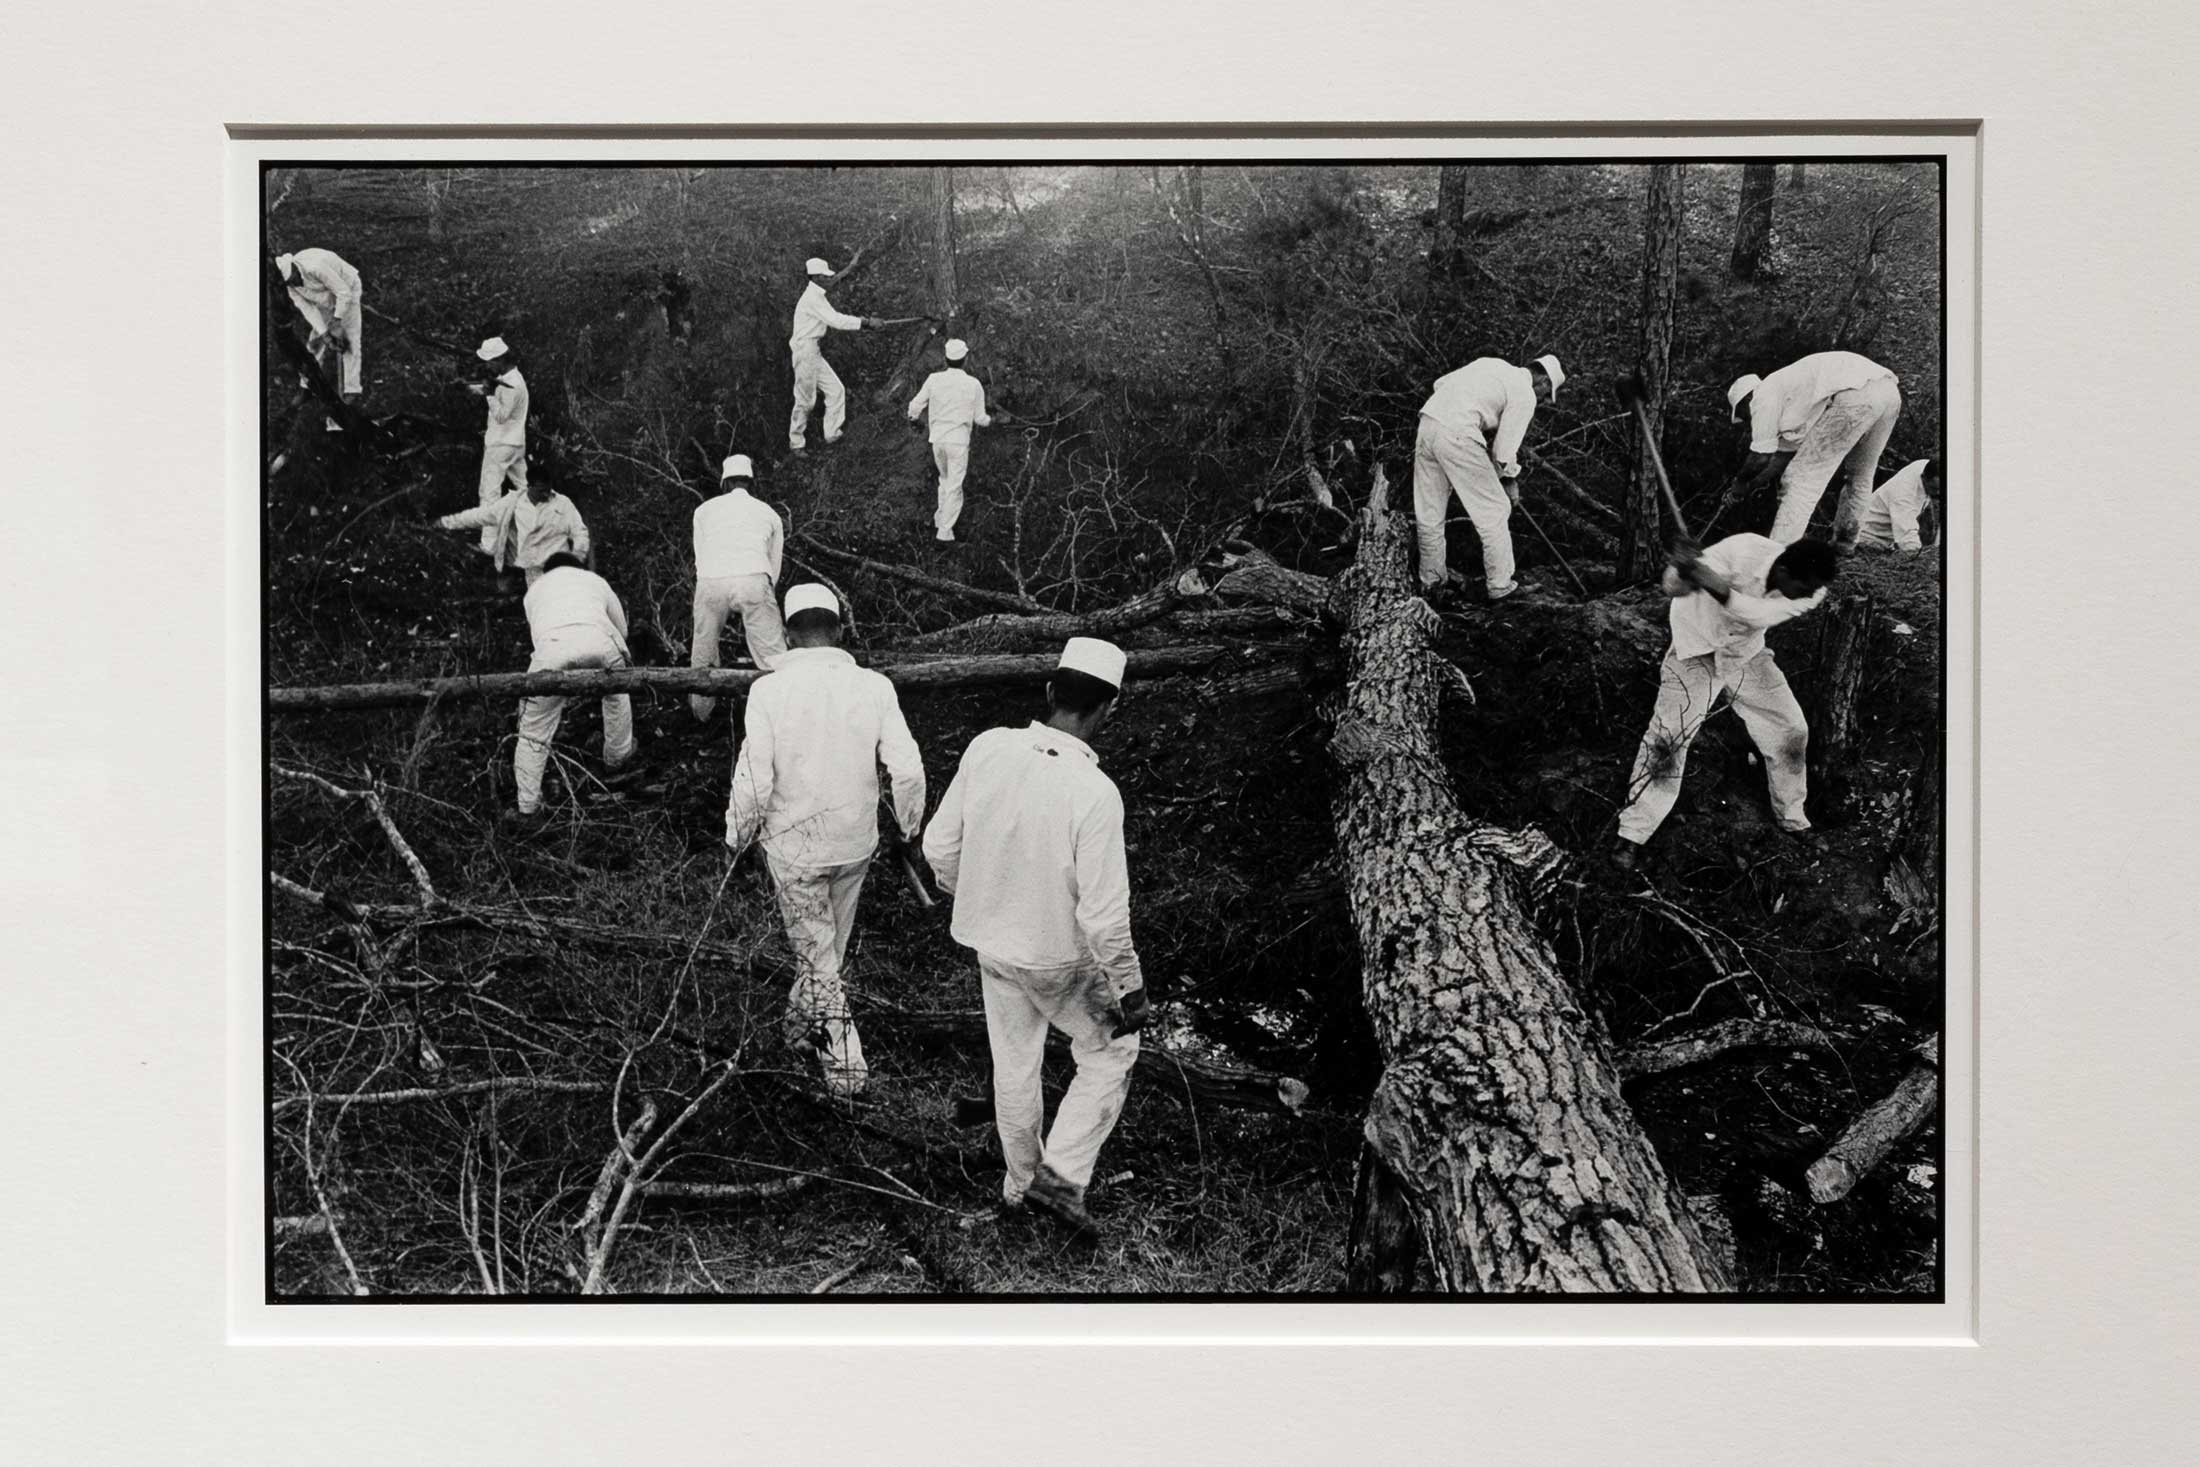 Clearing Land, Conversation with the Dead by Danny Lyon